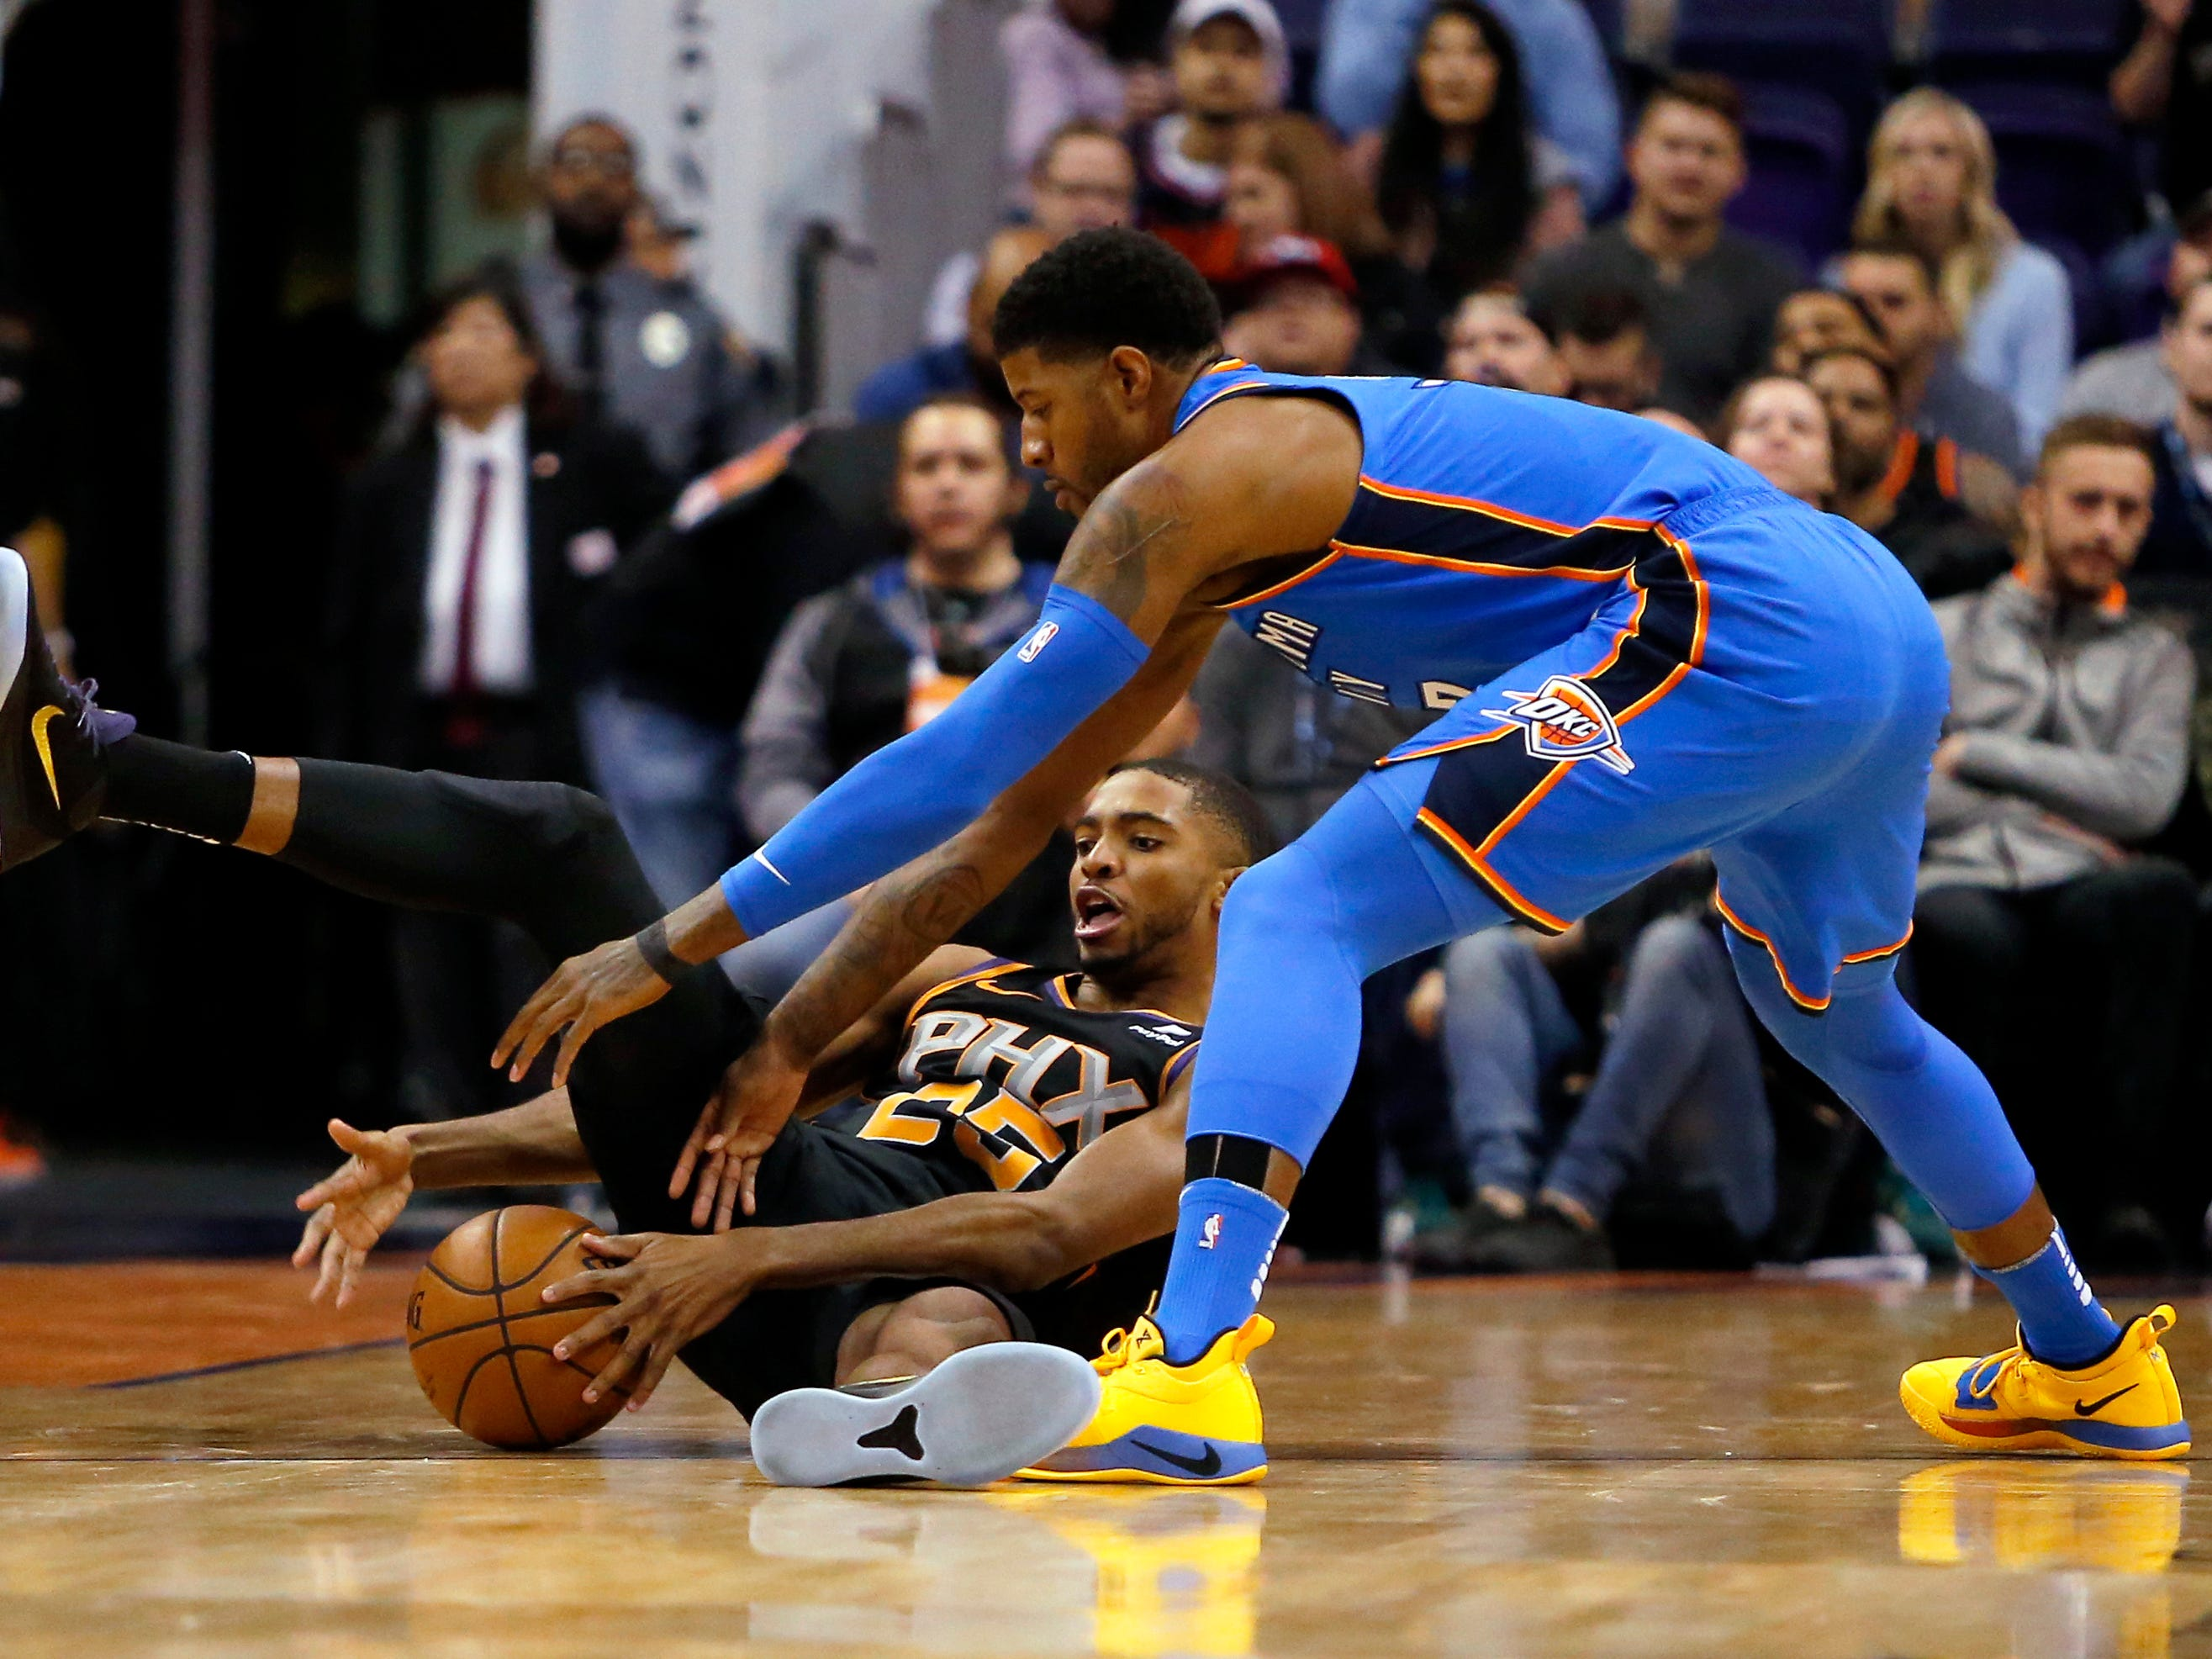 Phoenix Suns forward Mikal Bridges (25) and Oklahoma City Thunder forward Paul George reach for a loose ball during the first half of an NBA basketball game Saturday, Nov. 17, 2018, in Phoenix. (AP Photo/Rick Scuteri)